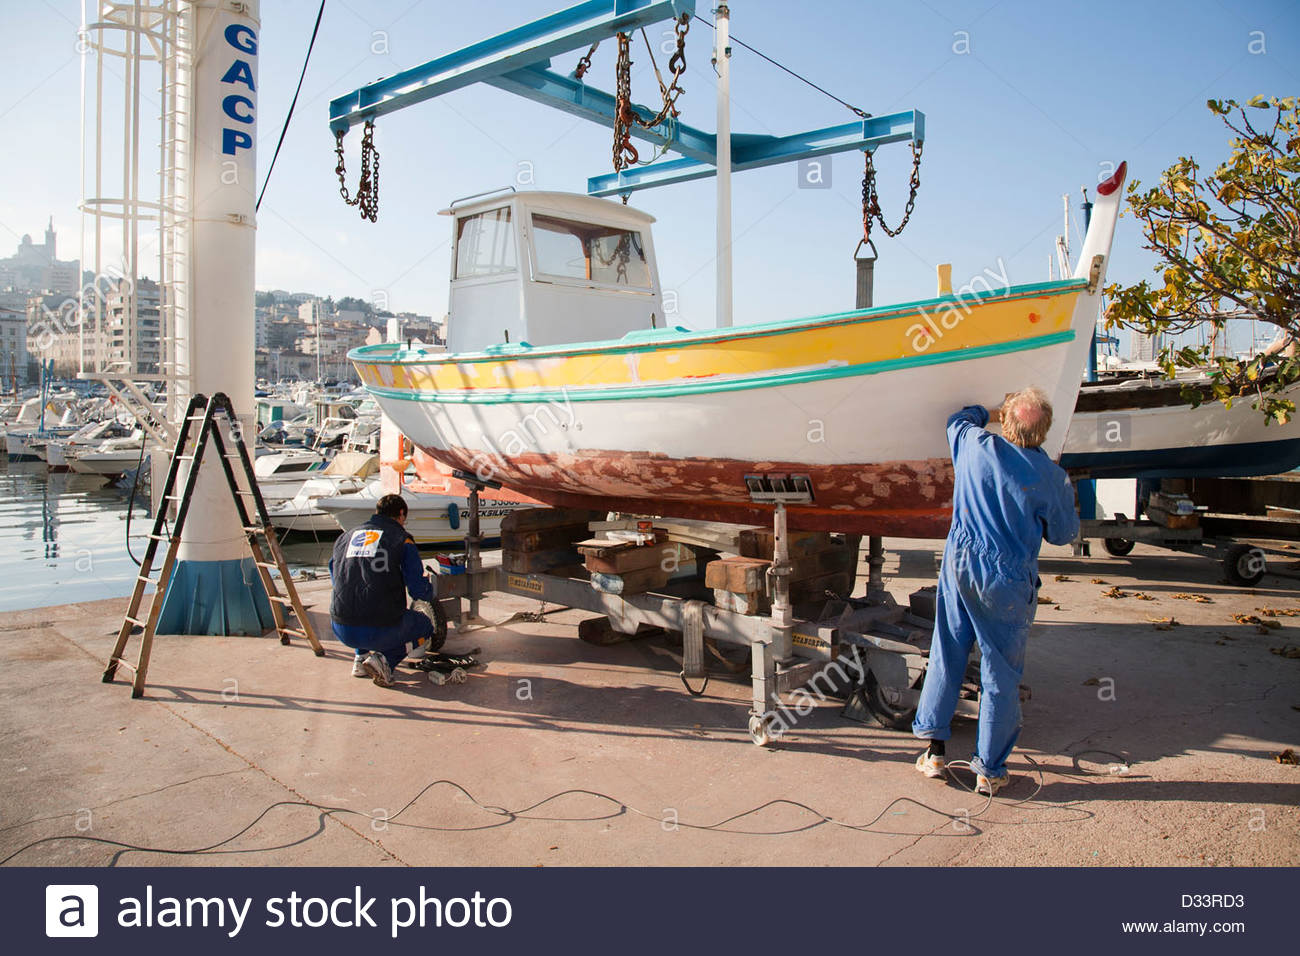 maintenance of a boat,old town,the harbor area,marseille,provence,france,europe - Stock Image